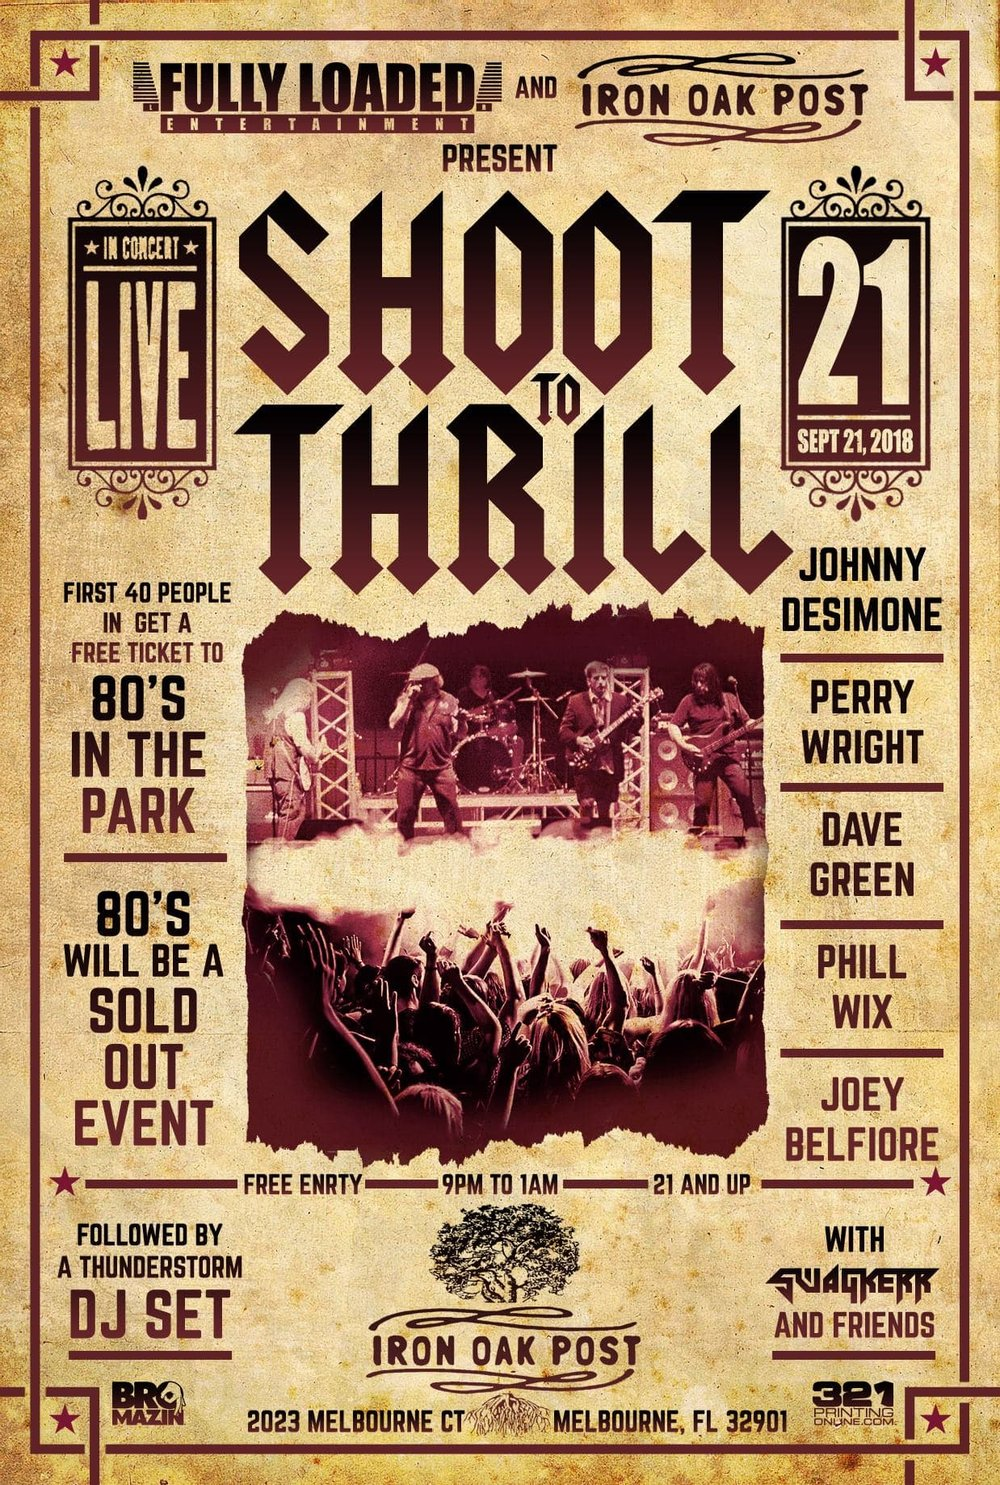 The 80's In the Park Pre-Party Featuring AC/DC Tribute band Shoot To Thrill